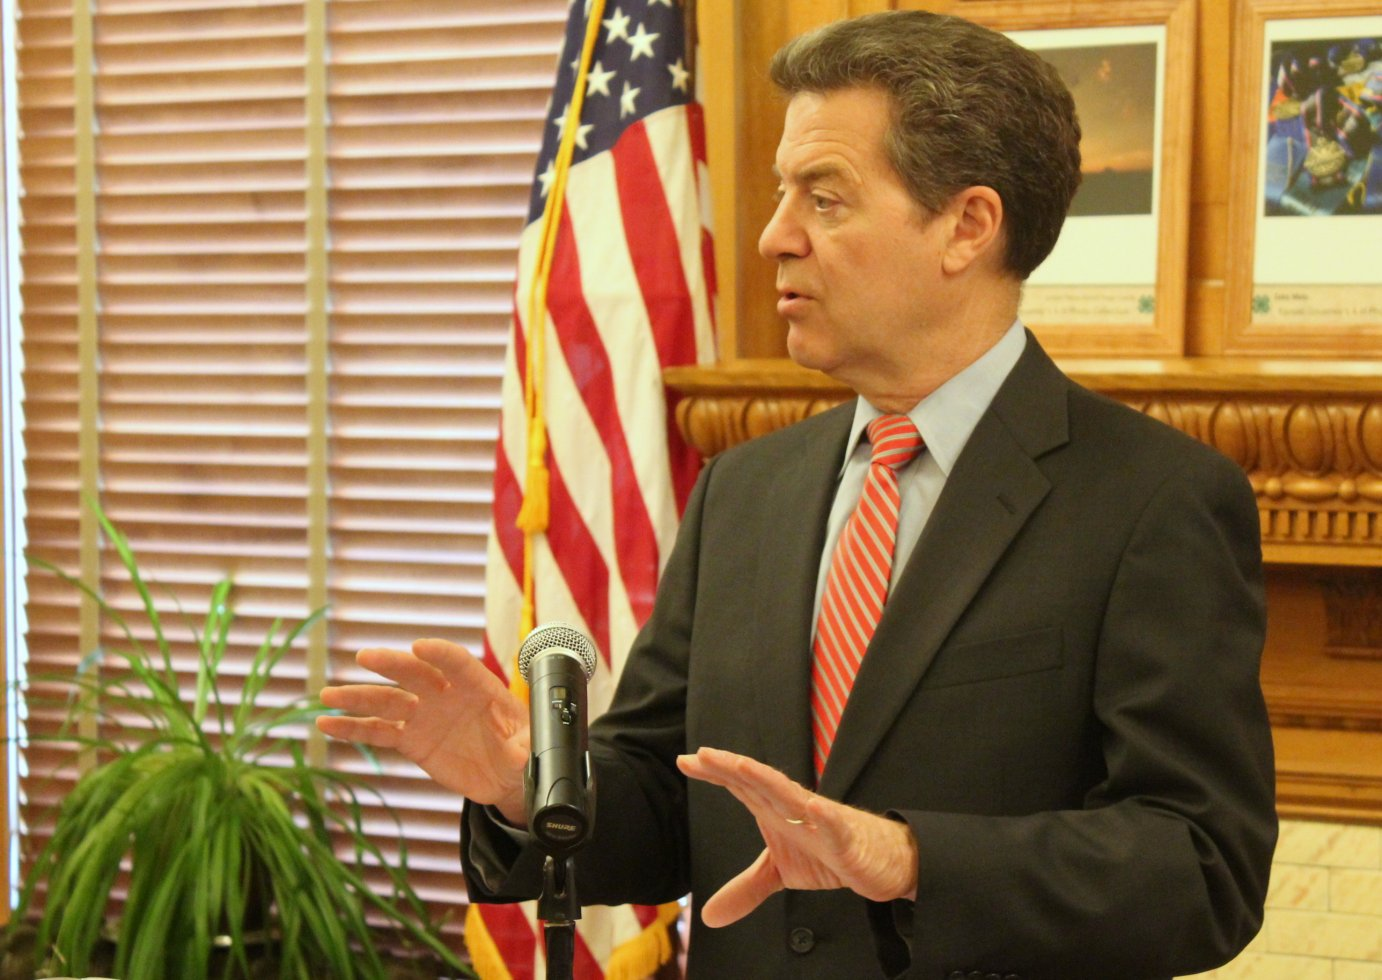 Governor Sam Brownback speaking earlier this year. (Photo by Stephen Koranda)